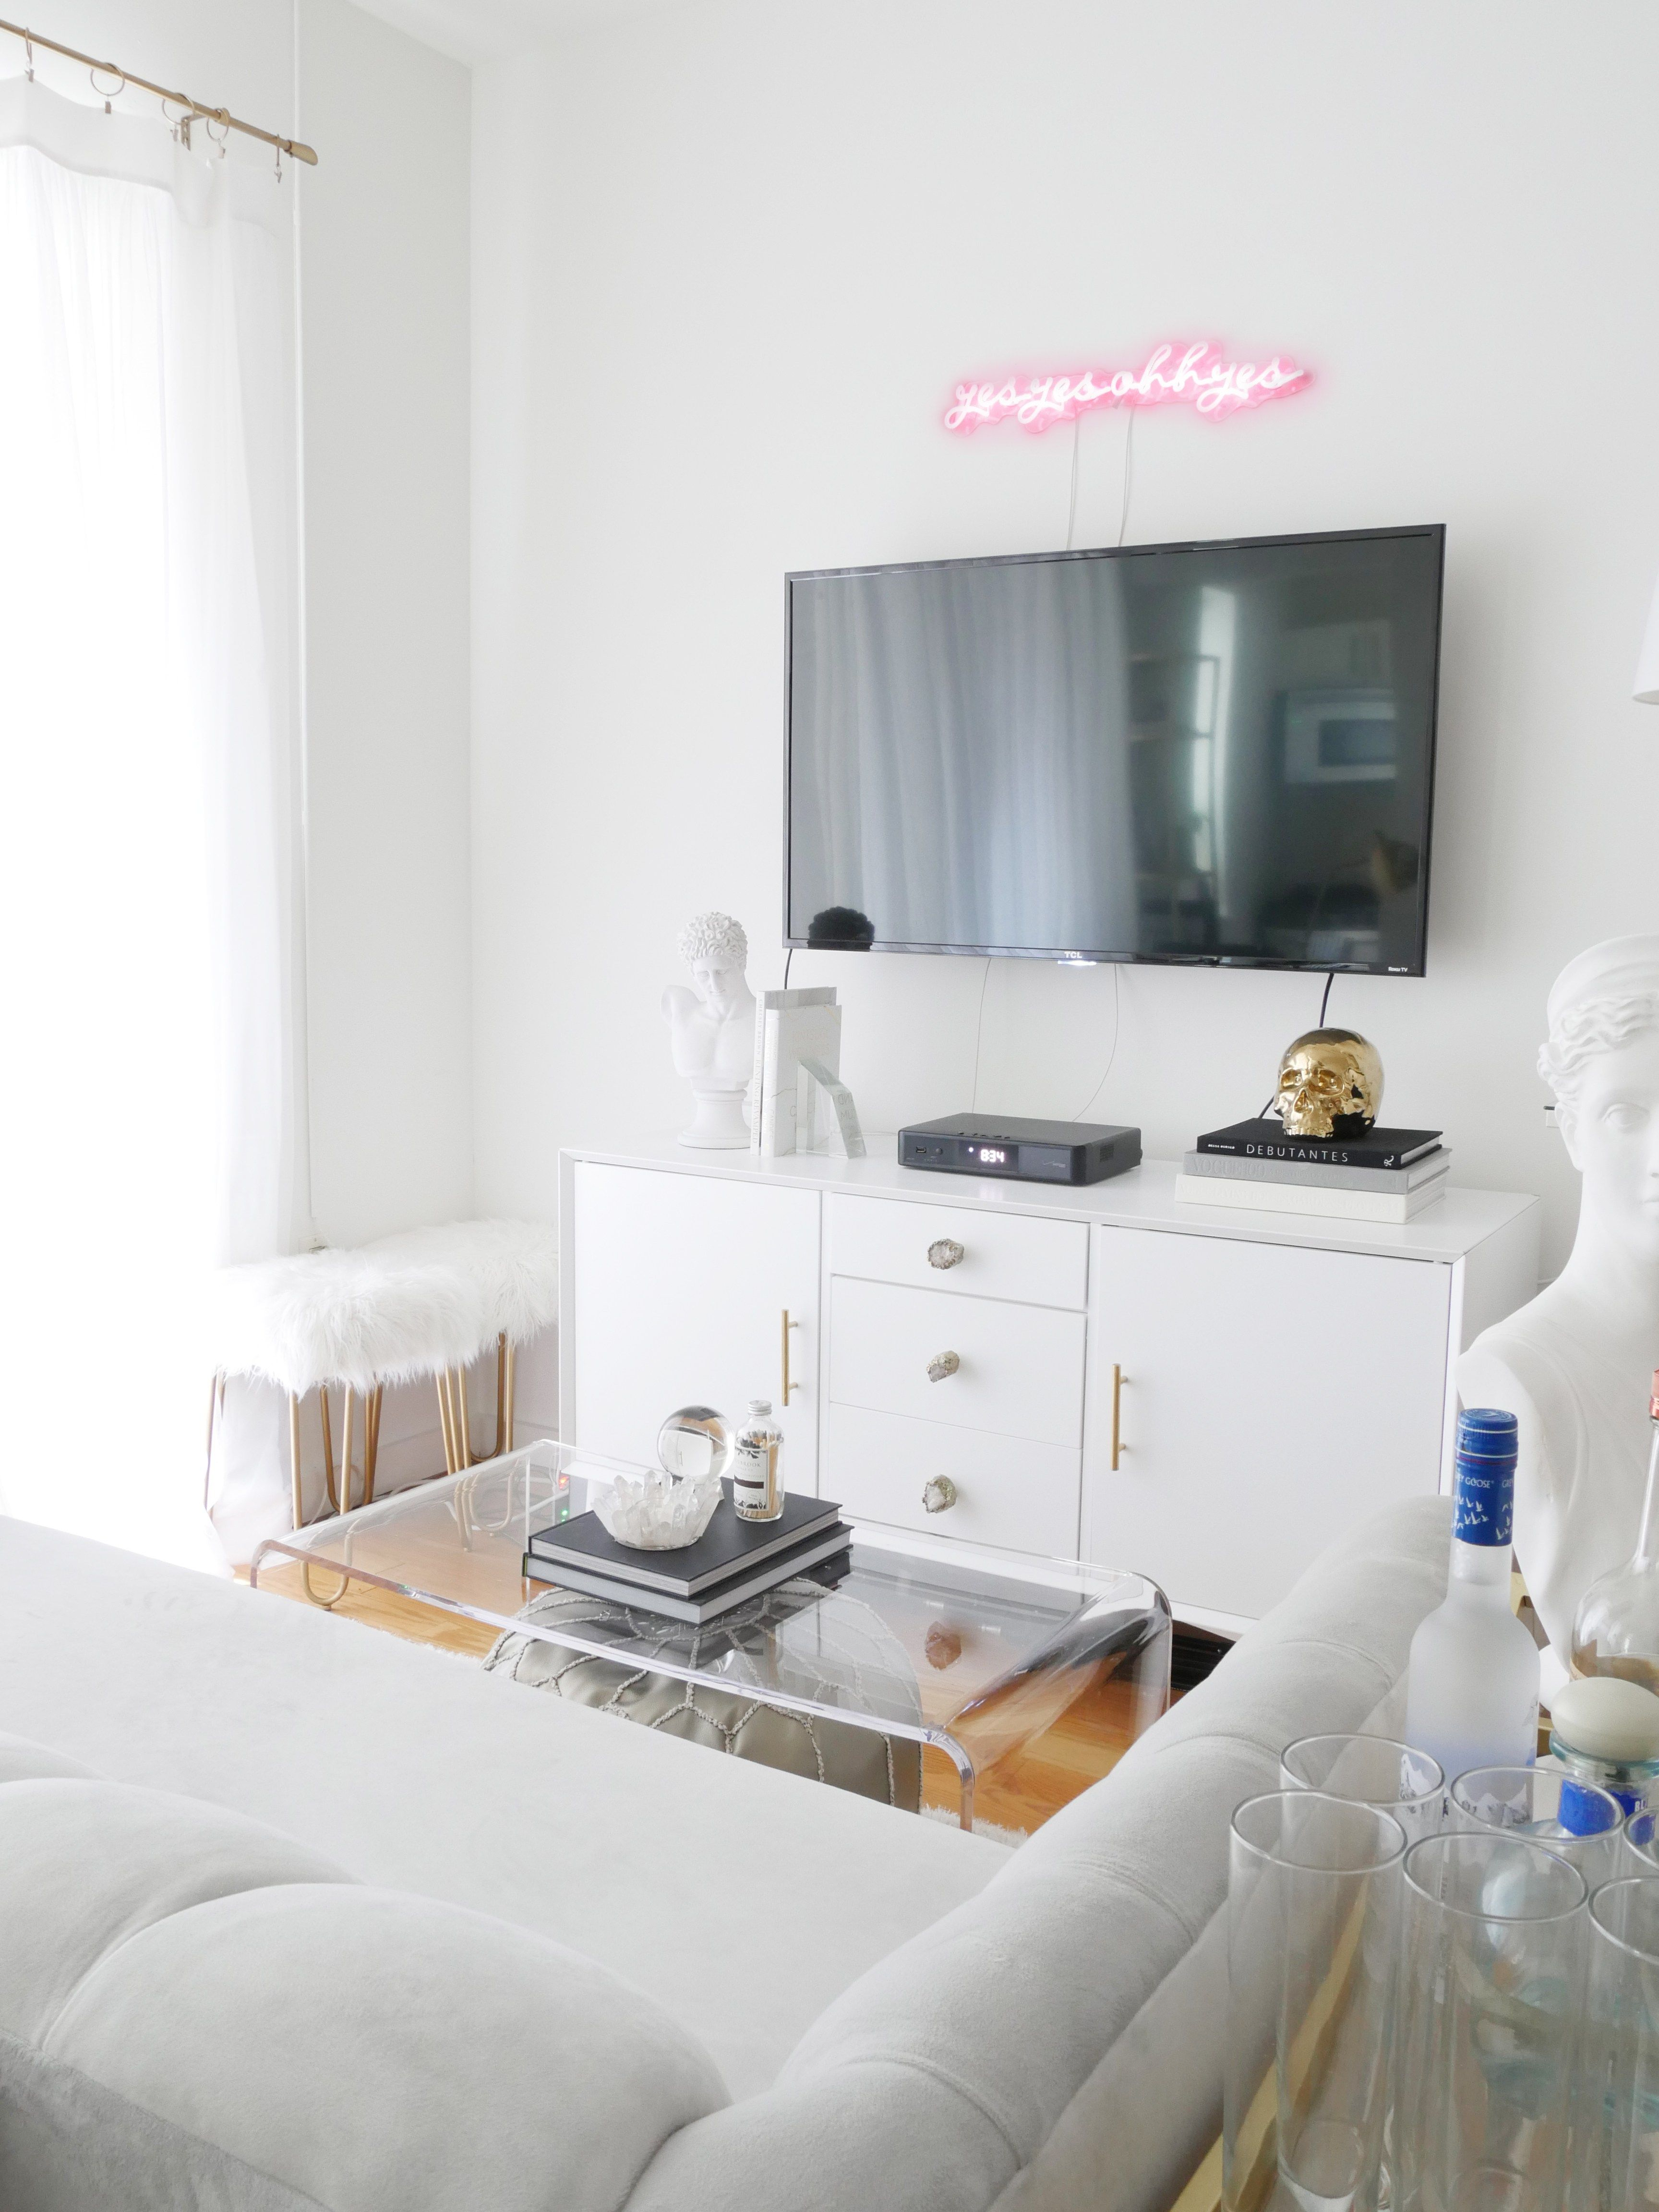 My 450 Sqft Studio Apartment Reveal With Images Small